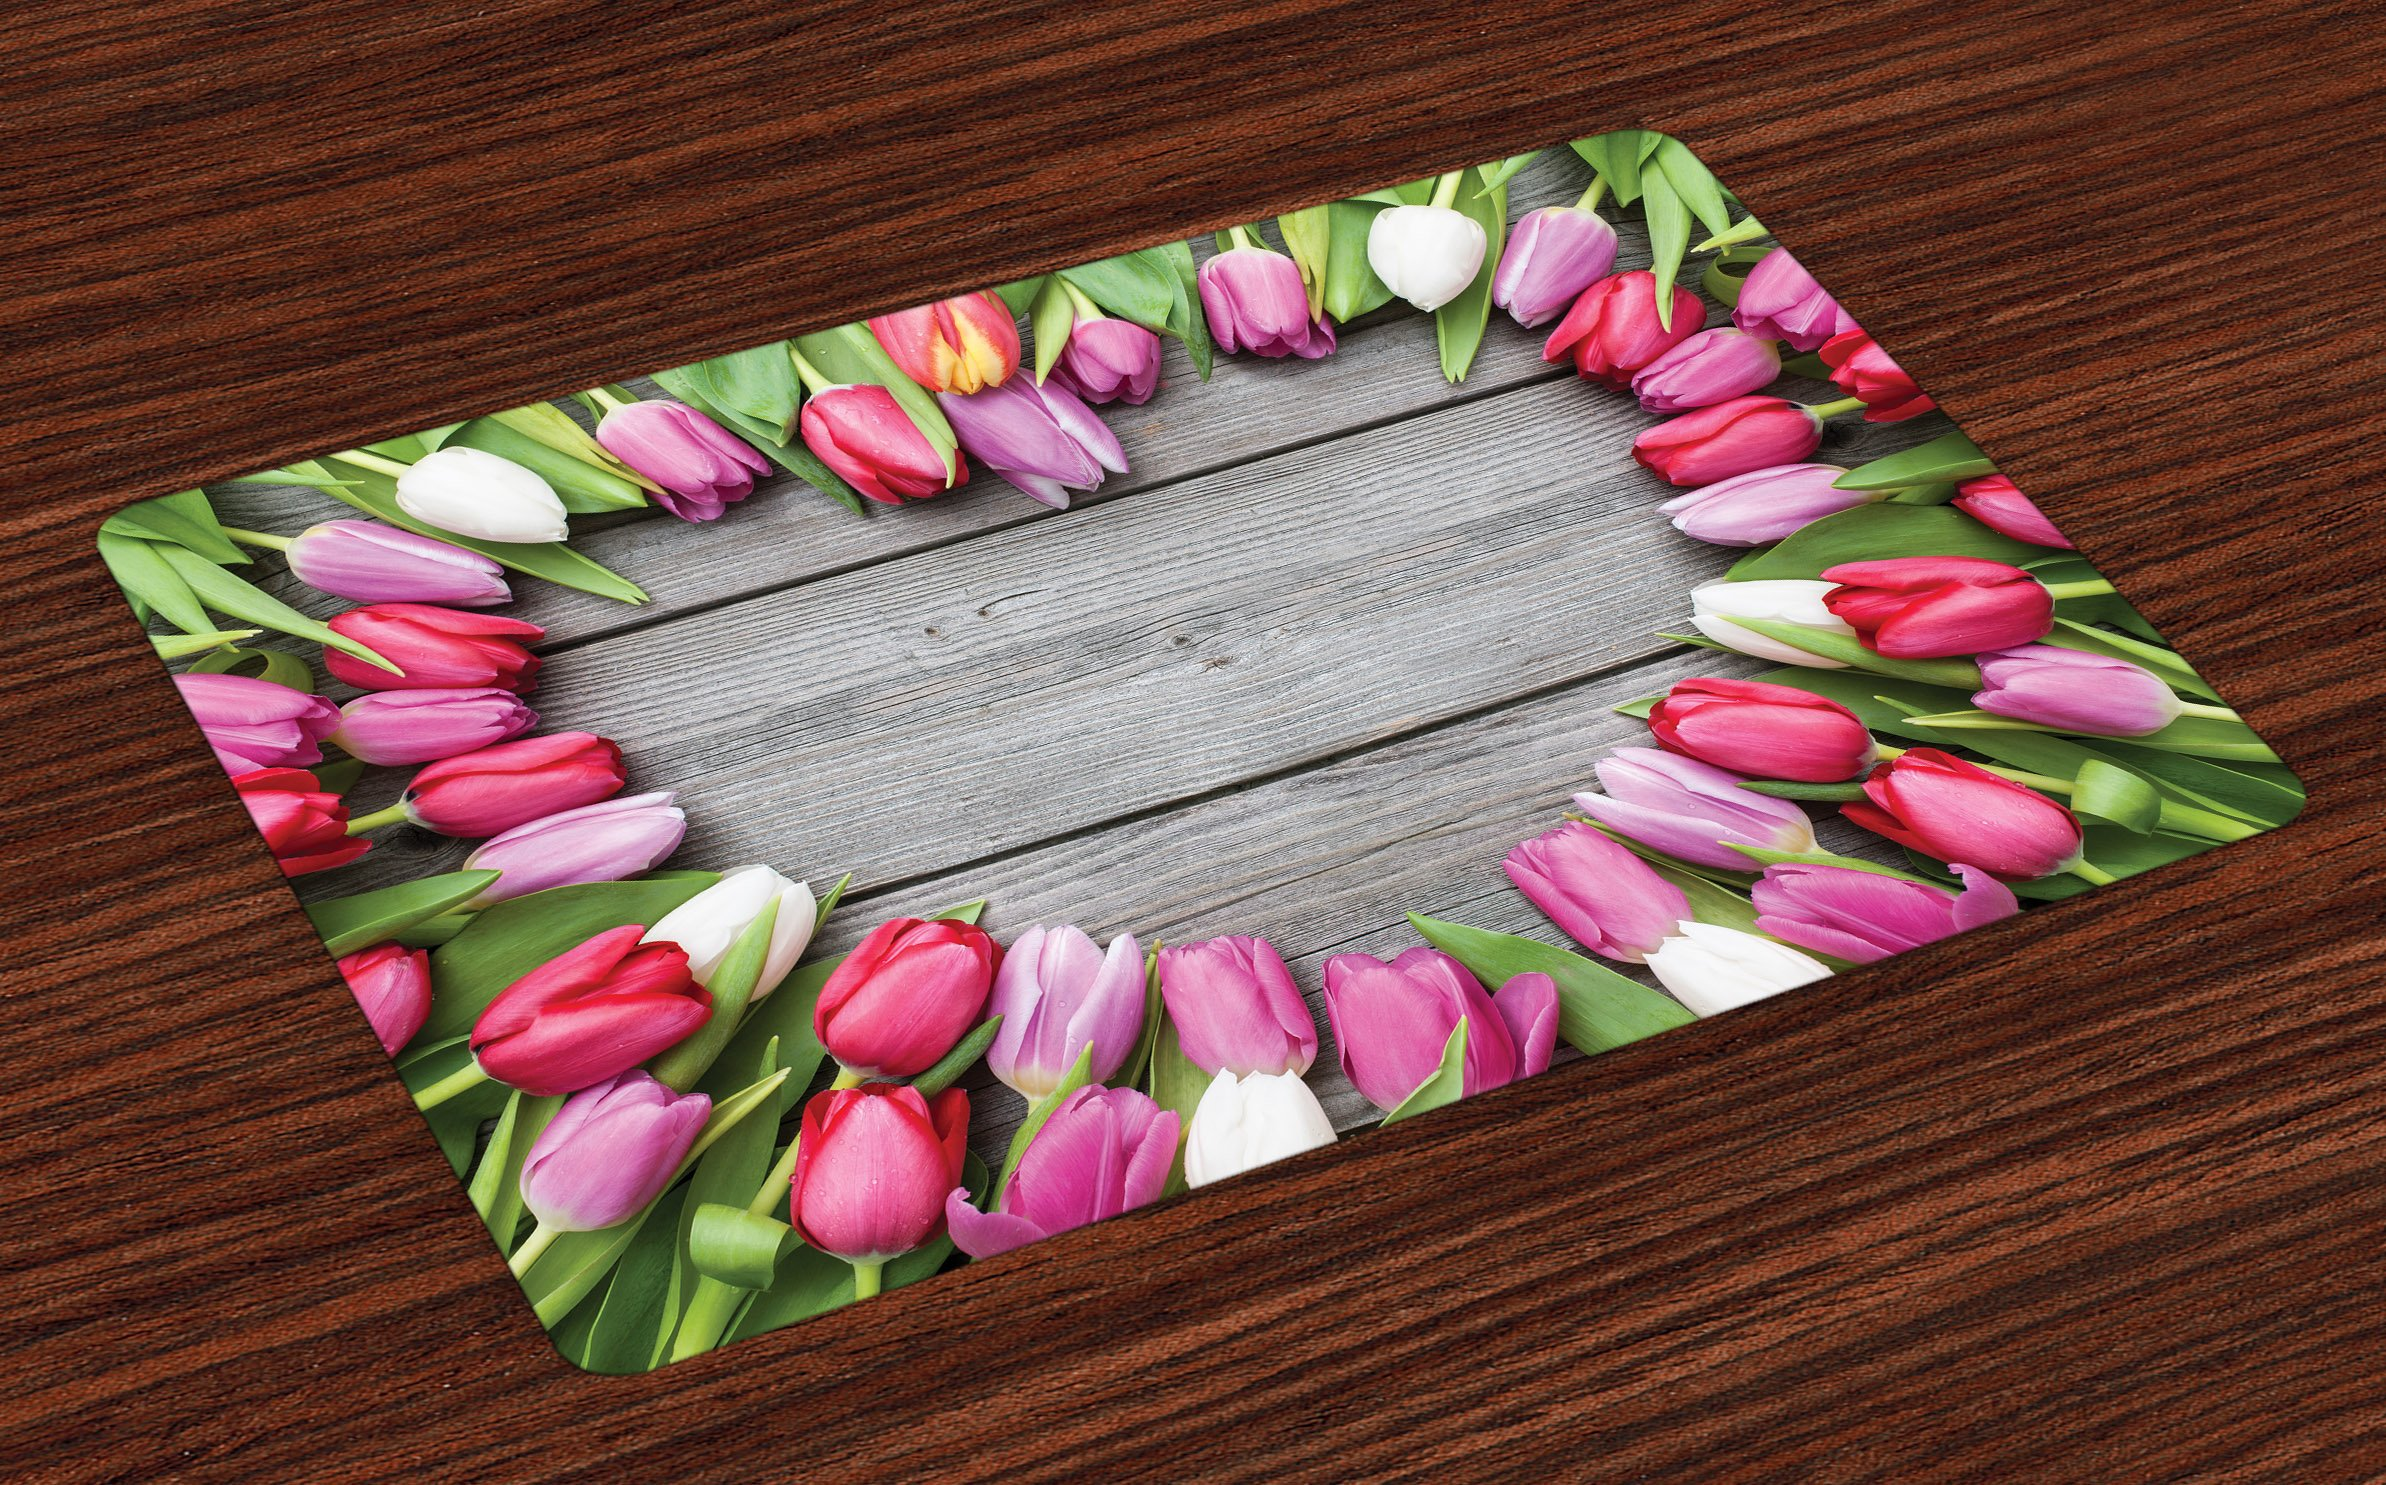 Ambesonne Love Place Mats Set of 4, Frame of Fresh Tulips Arranged on Wooden Table Country Nature Valentines Print, Washable Fabric Placemats for Dining Room Kitchen Table Decor, Pink Green Umber,